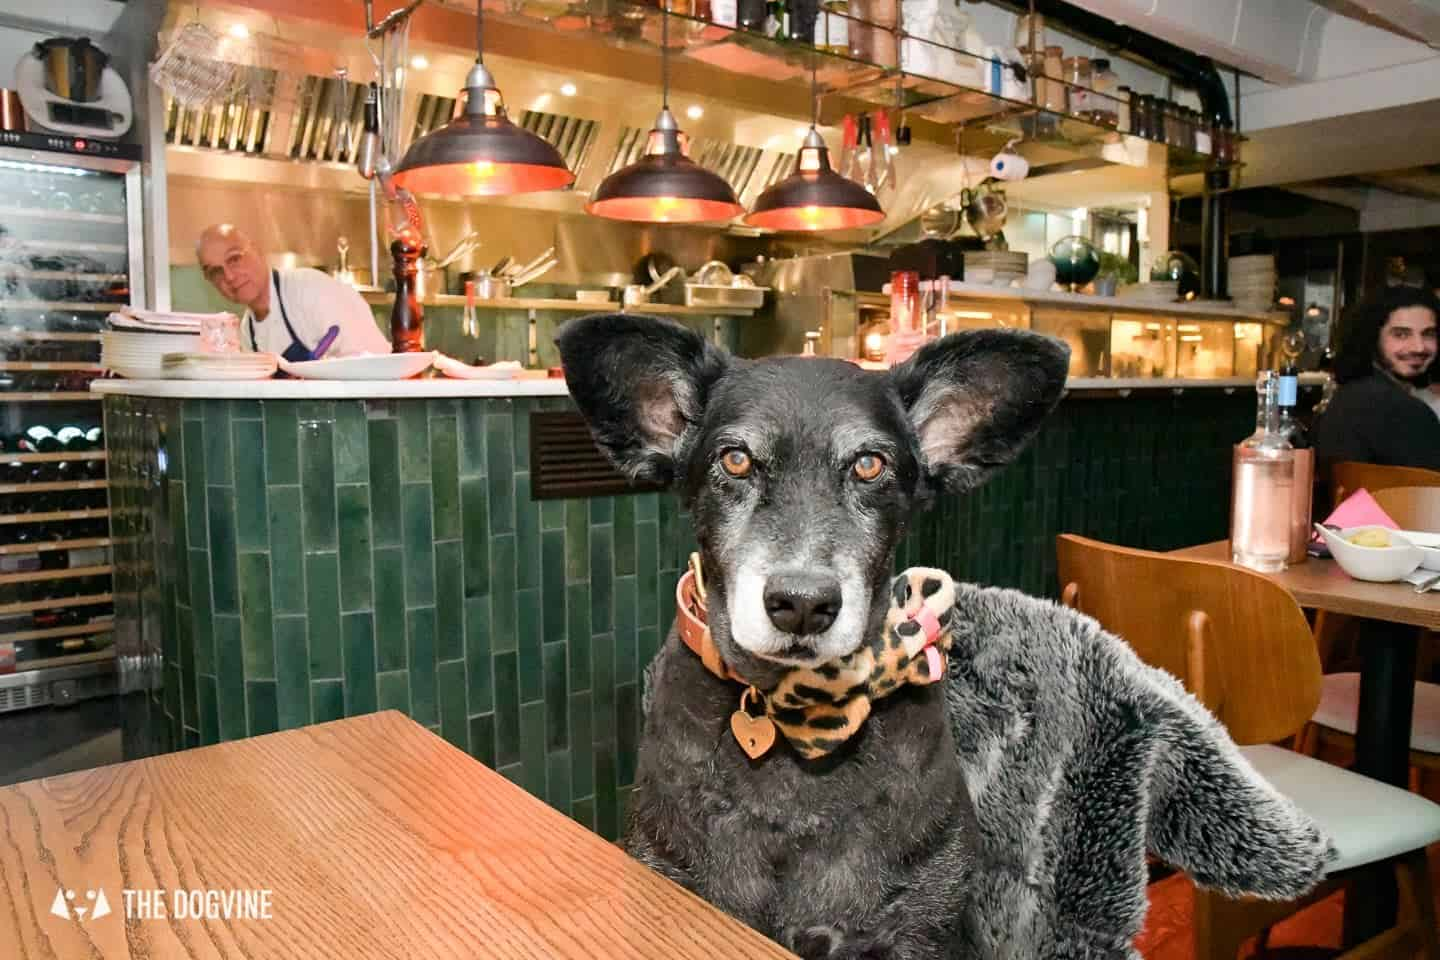 Seafood Surprises at Dog-friendly The Melusine Restaurant